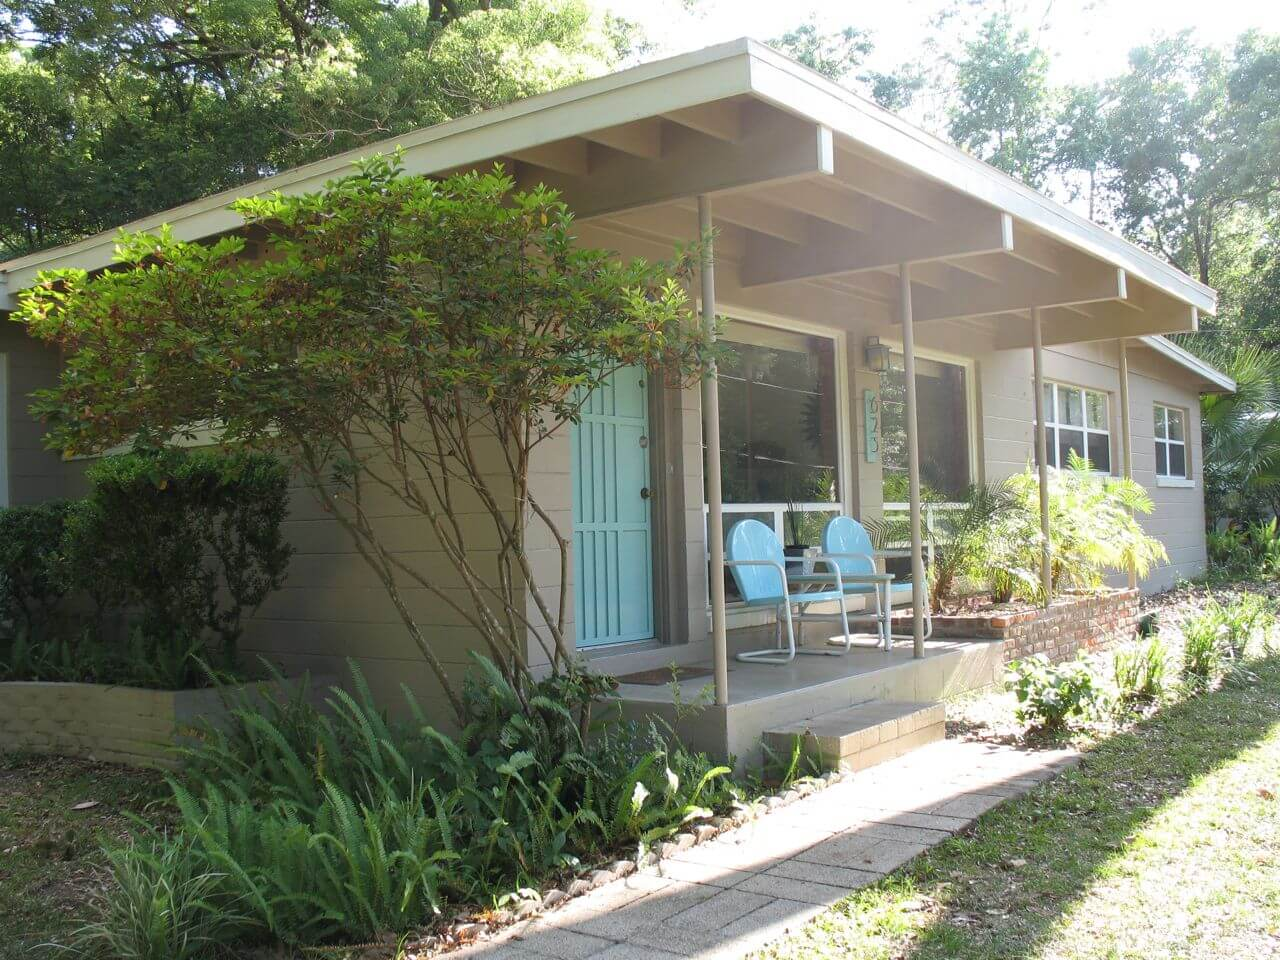 I live in gainesville florida there are several mid century modern houses here the street i live on was developed in the early to mid fifties mainly by